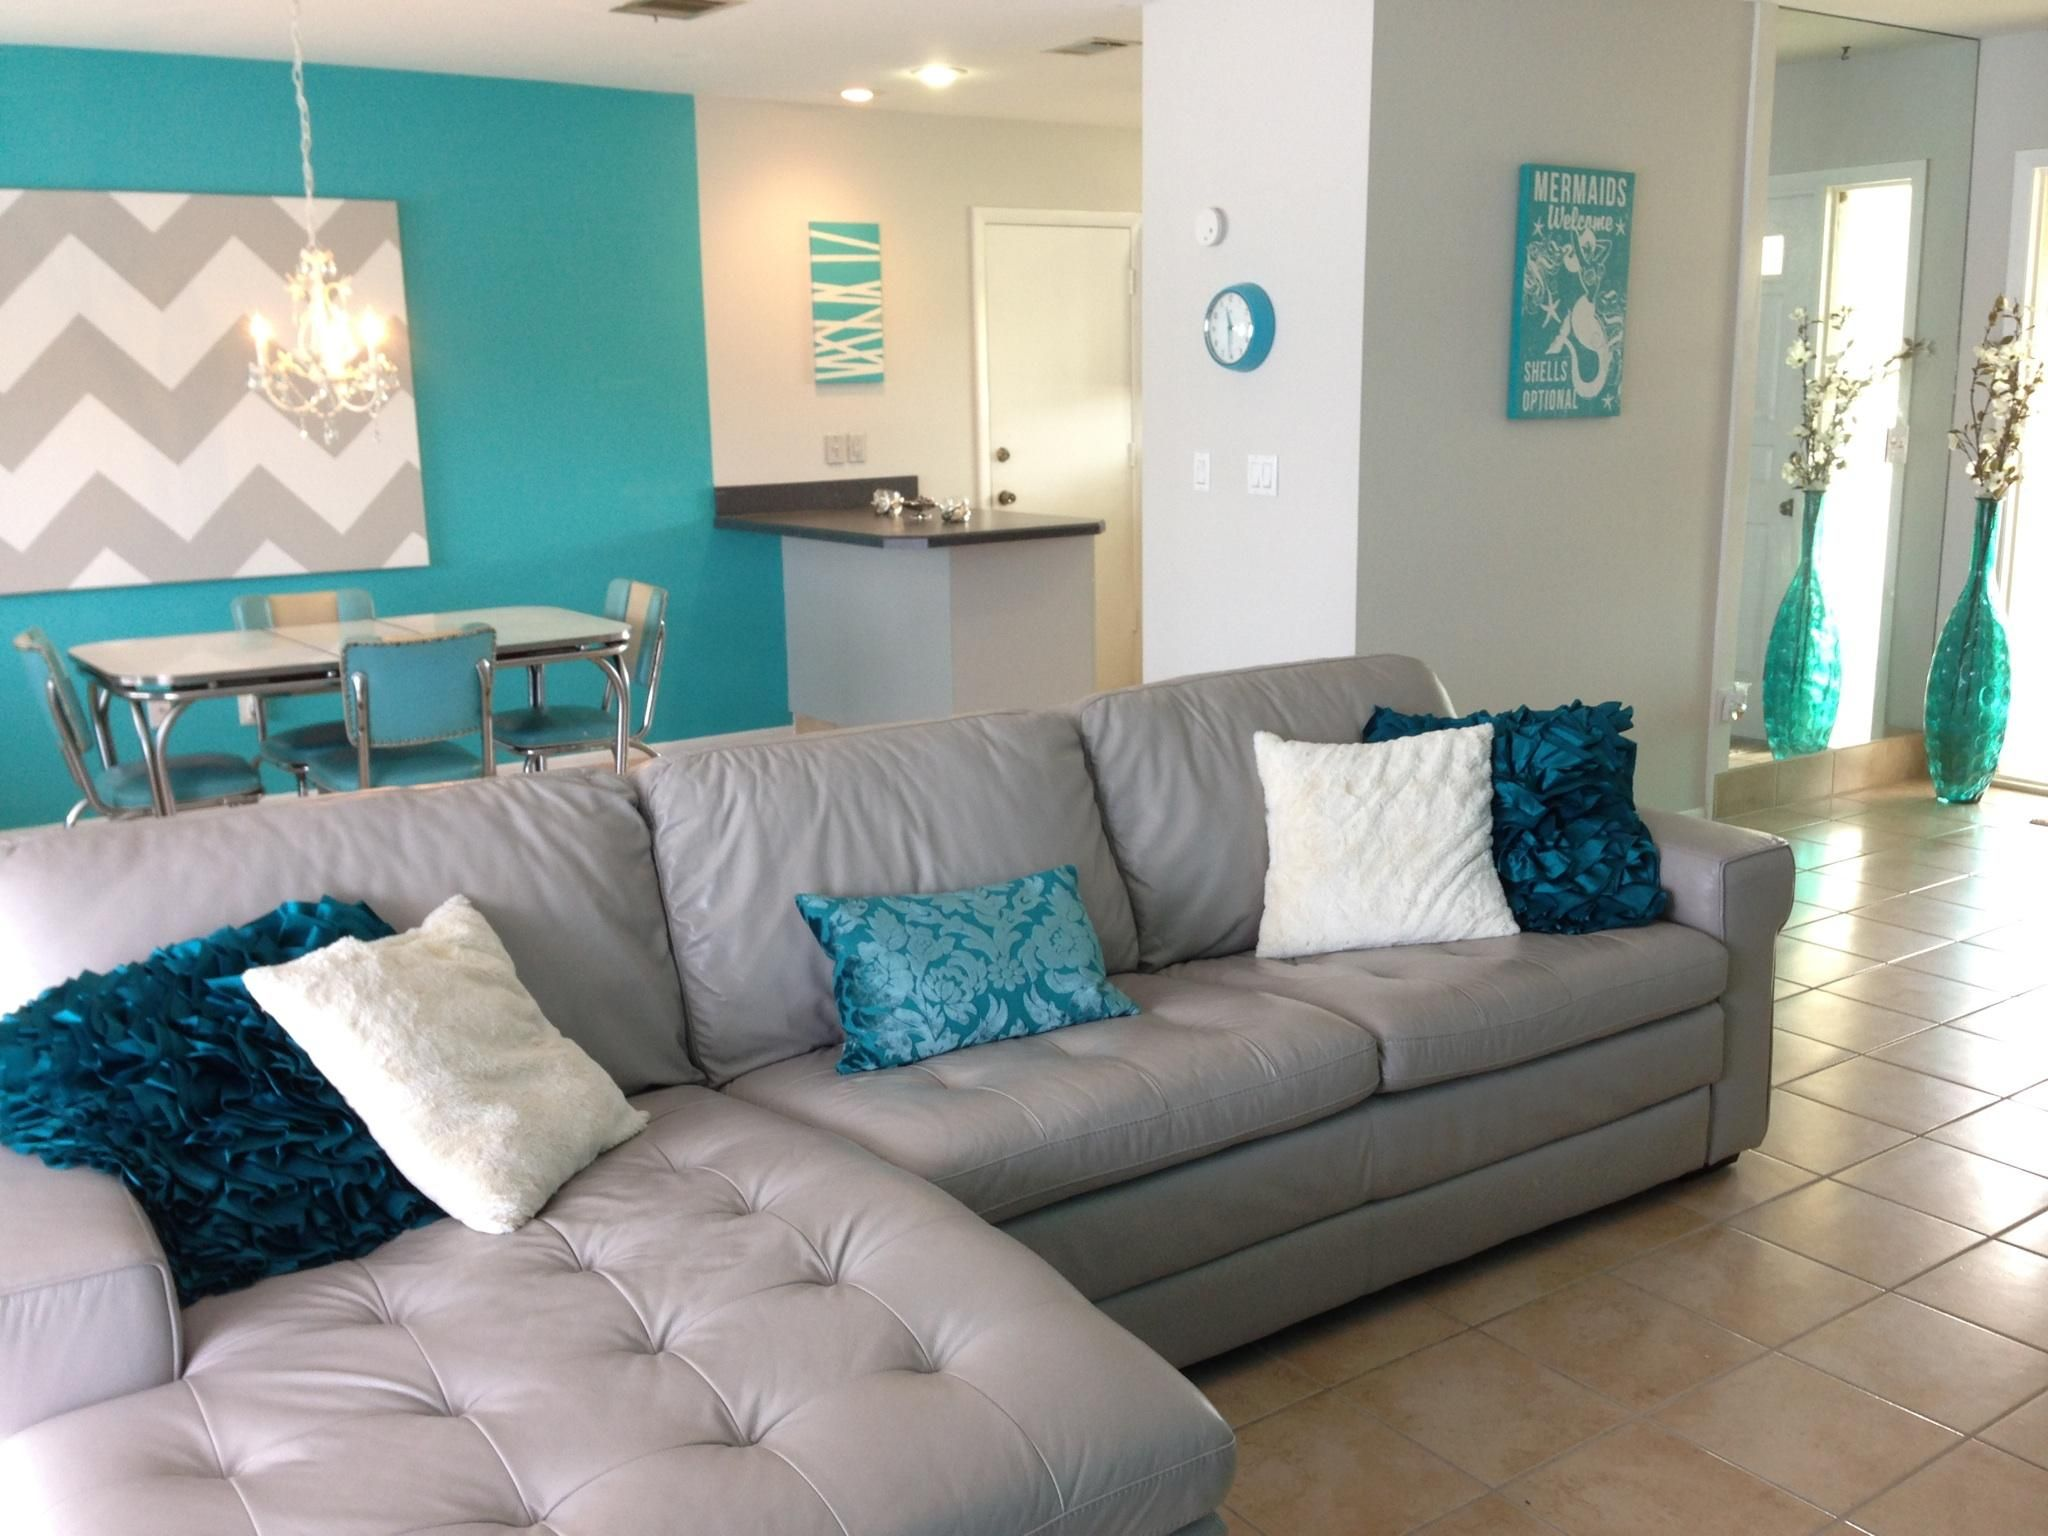 Florida home beach house leather couch homemade art - Sofa azul turquesa ...